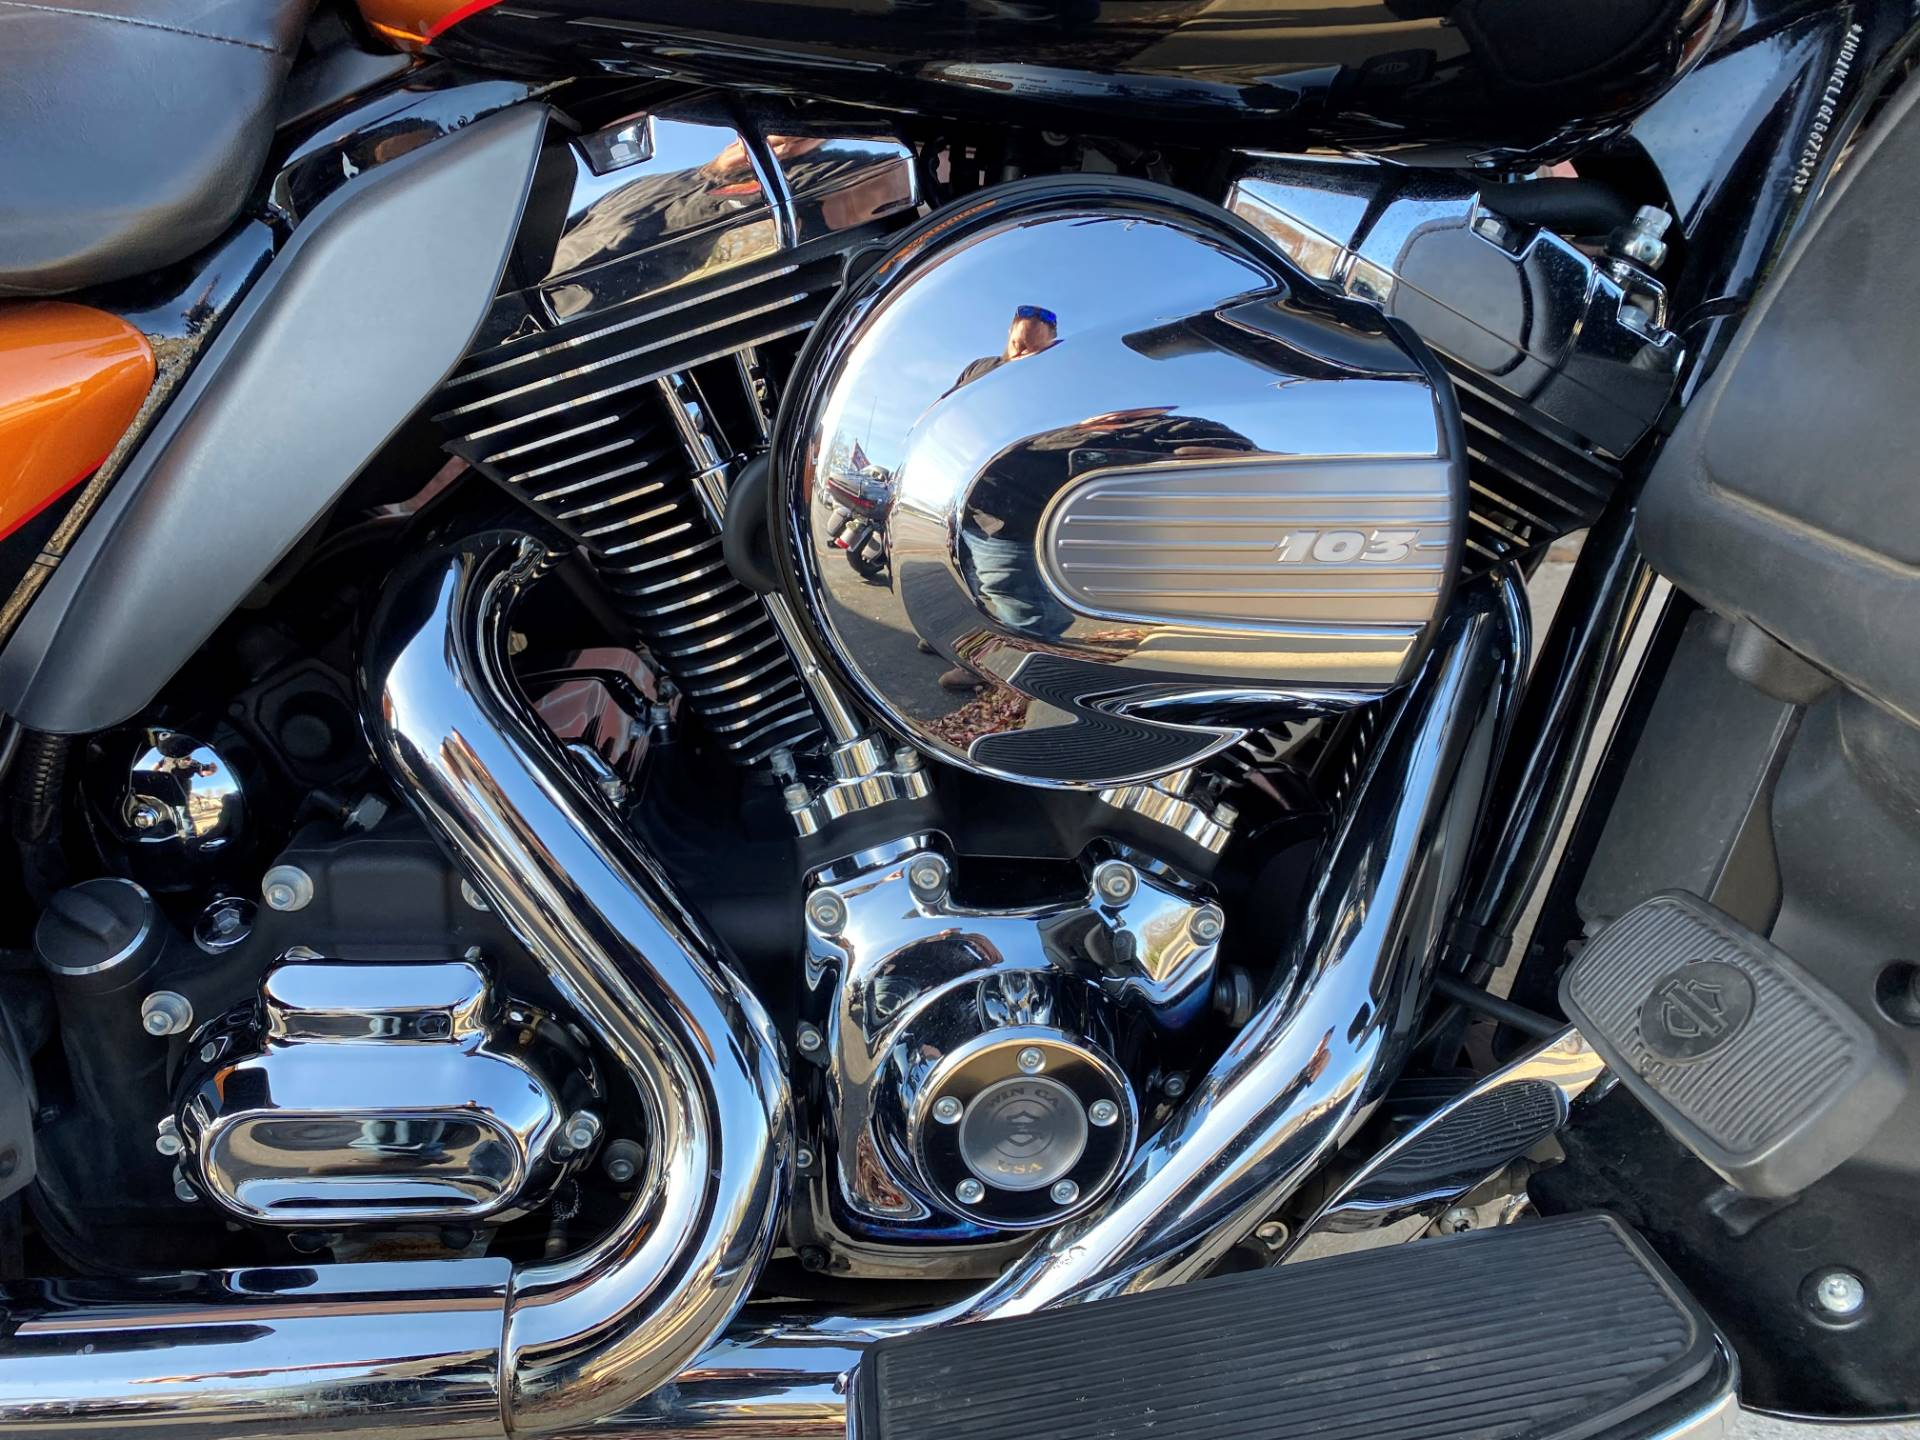 2014 Harley-Davidson Ultra Limited in Muskego, Wisconsin - Photo 7